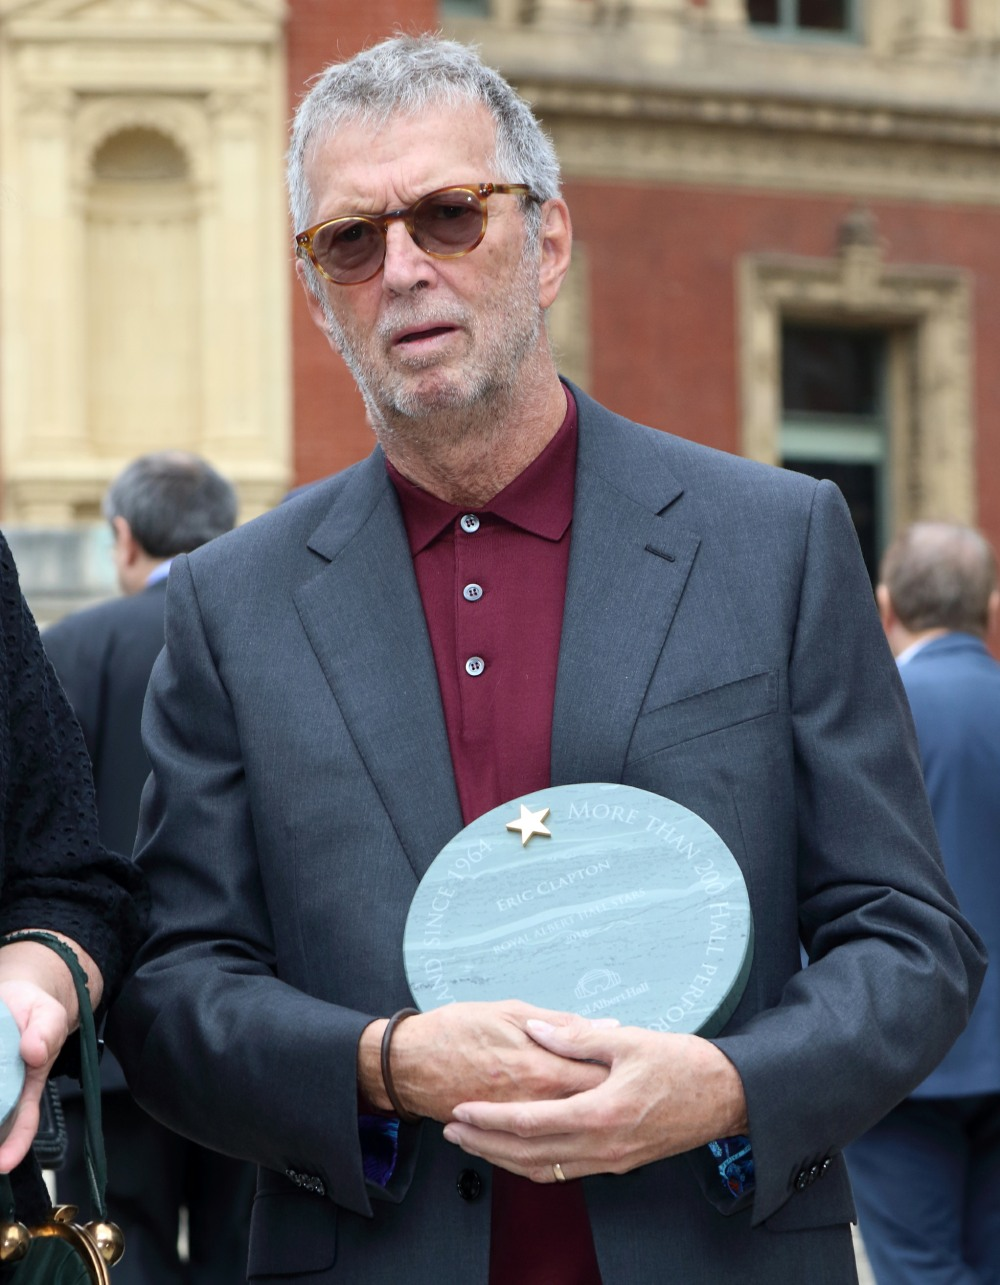 Eric Clapton at the Royal Albert Hall 'Walk Of Fame' launch, celebrating Eleven of the most illustrious names from the famous venue's stellar history. Commemorated with specially engraved stones outside the building ahead of the venue's 150th anniversary.